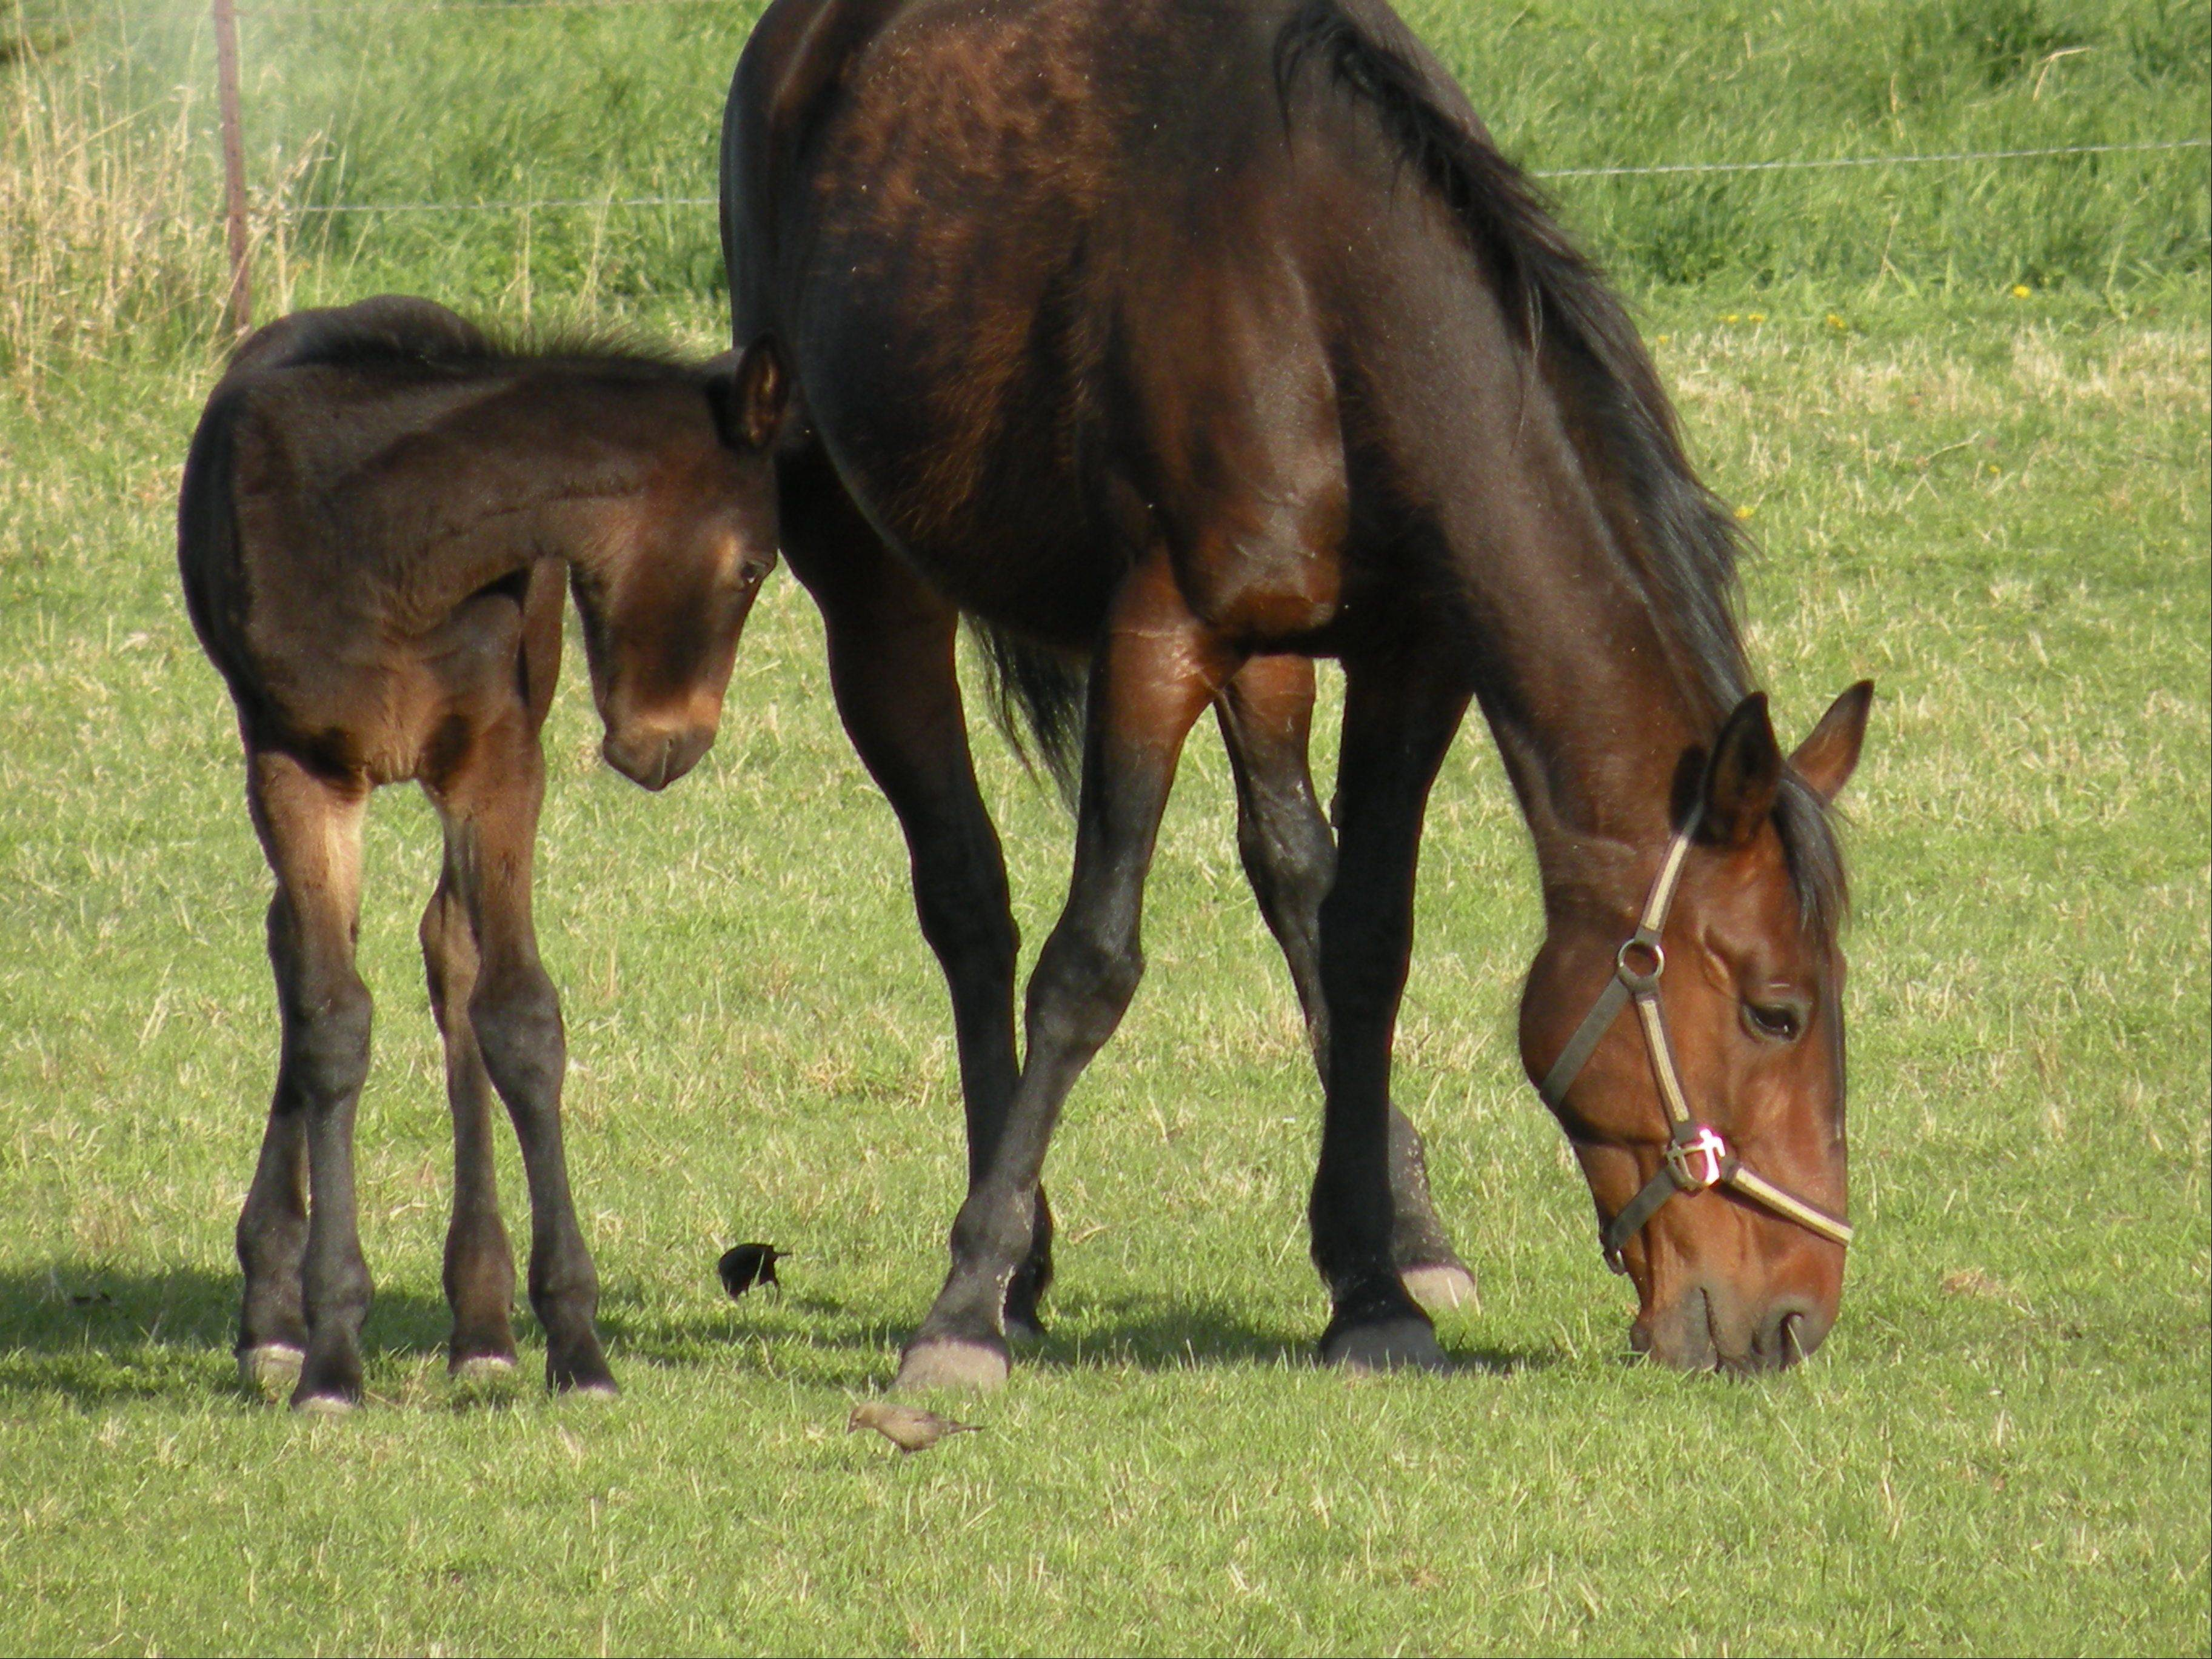 A foal nuzzles its mother at a farm in Alden last April.